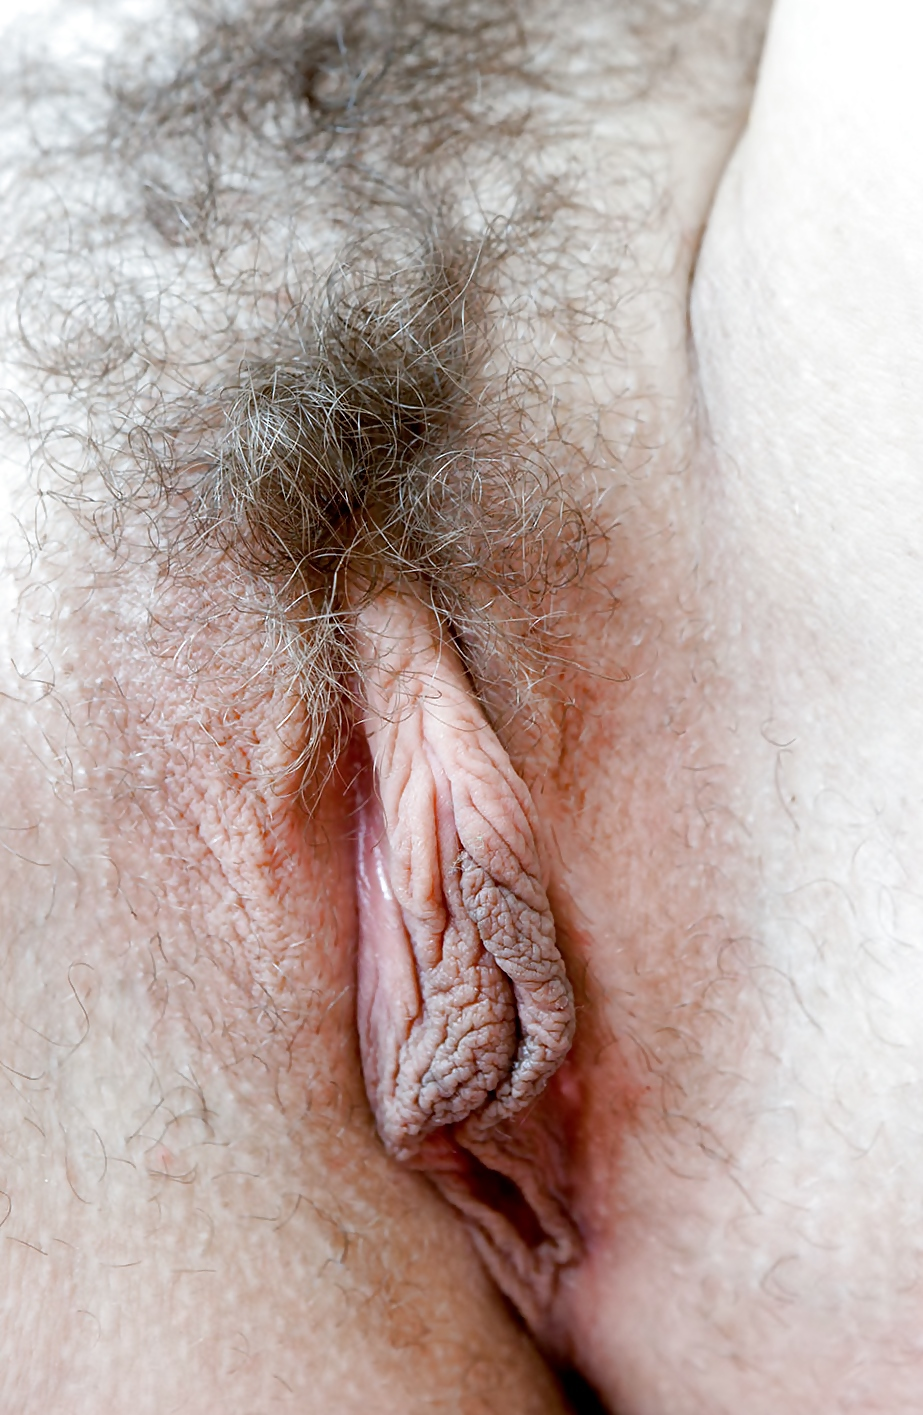 Aged pussy lips, sexiest women on planet earth nude